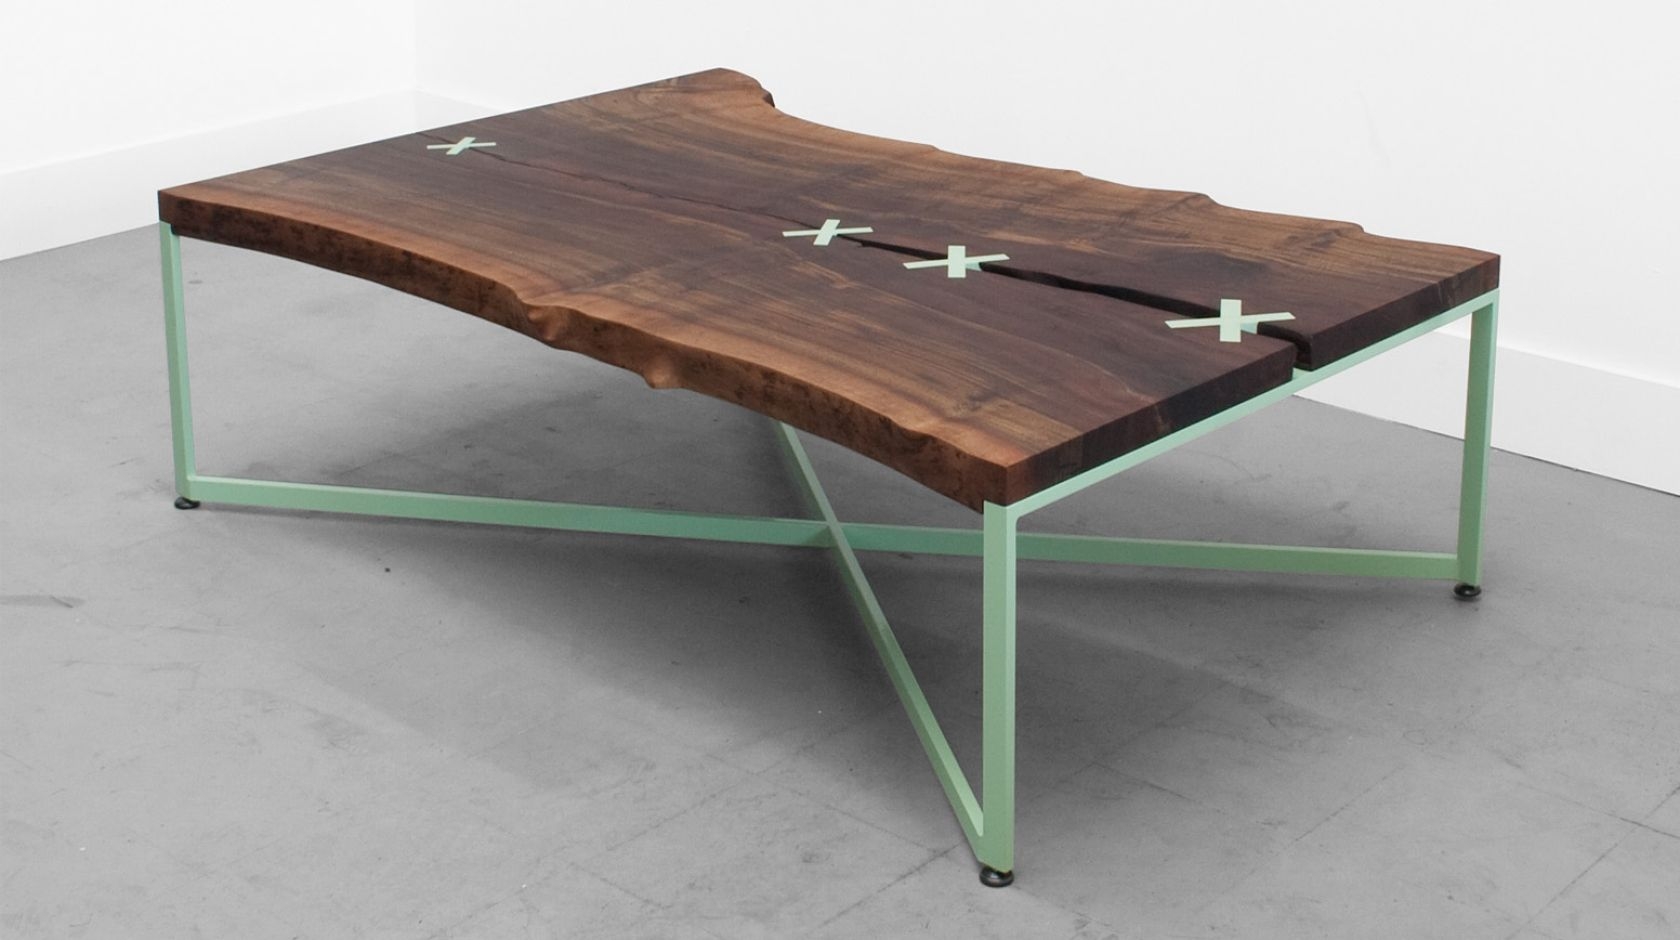 The Stitched Table is built around a one of a kind flitch cut